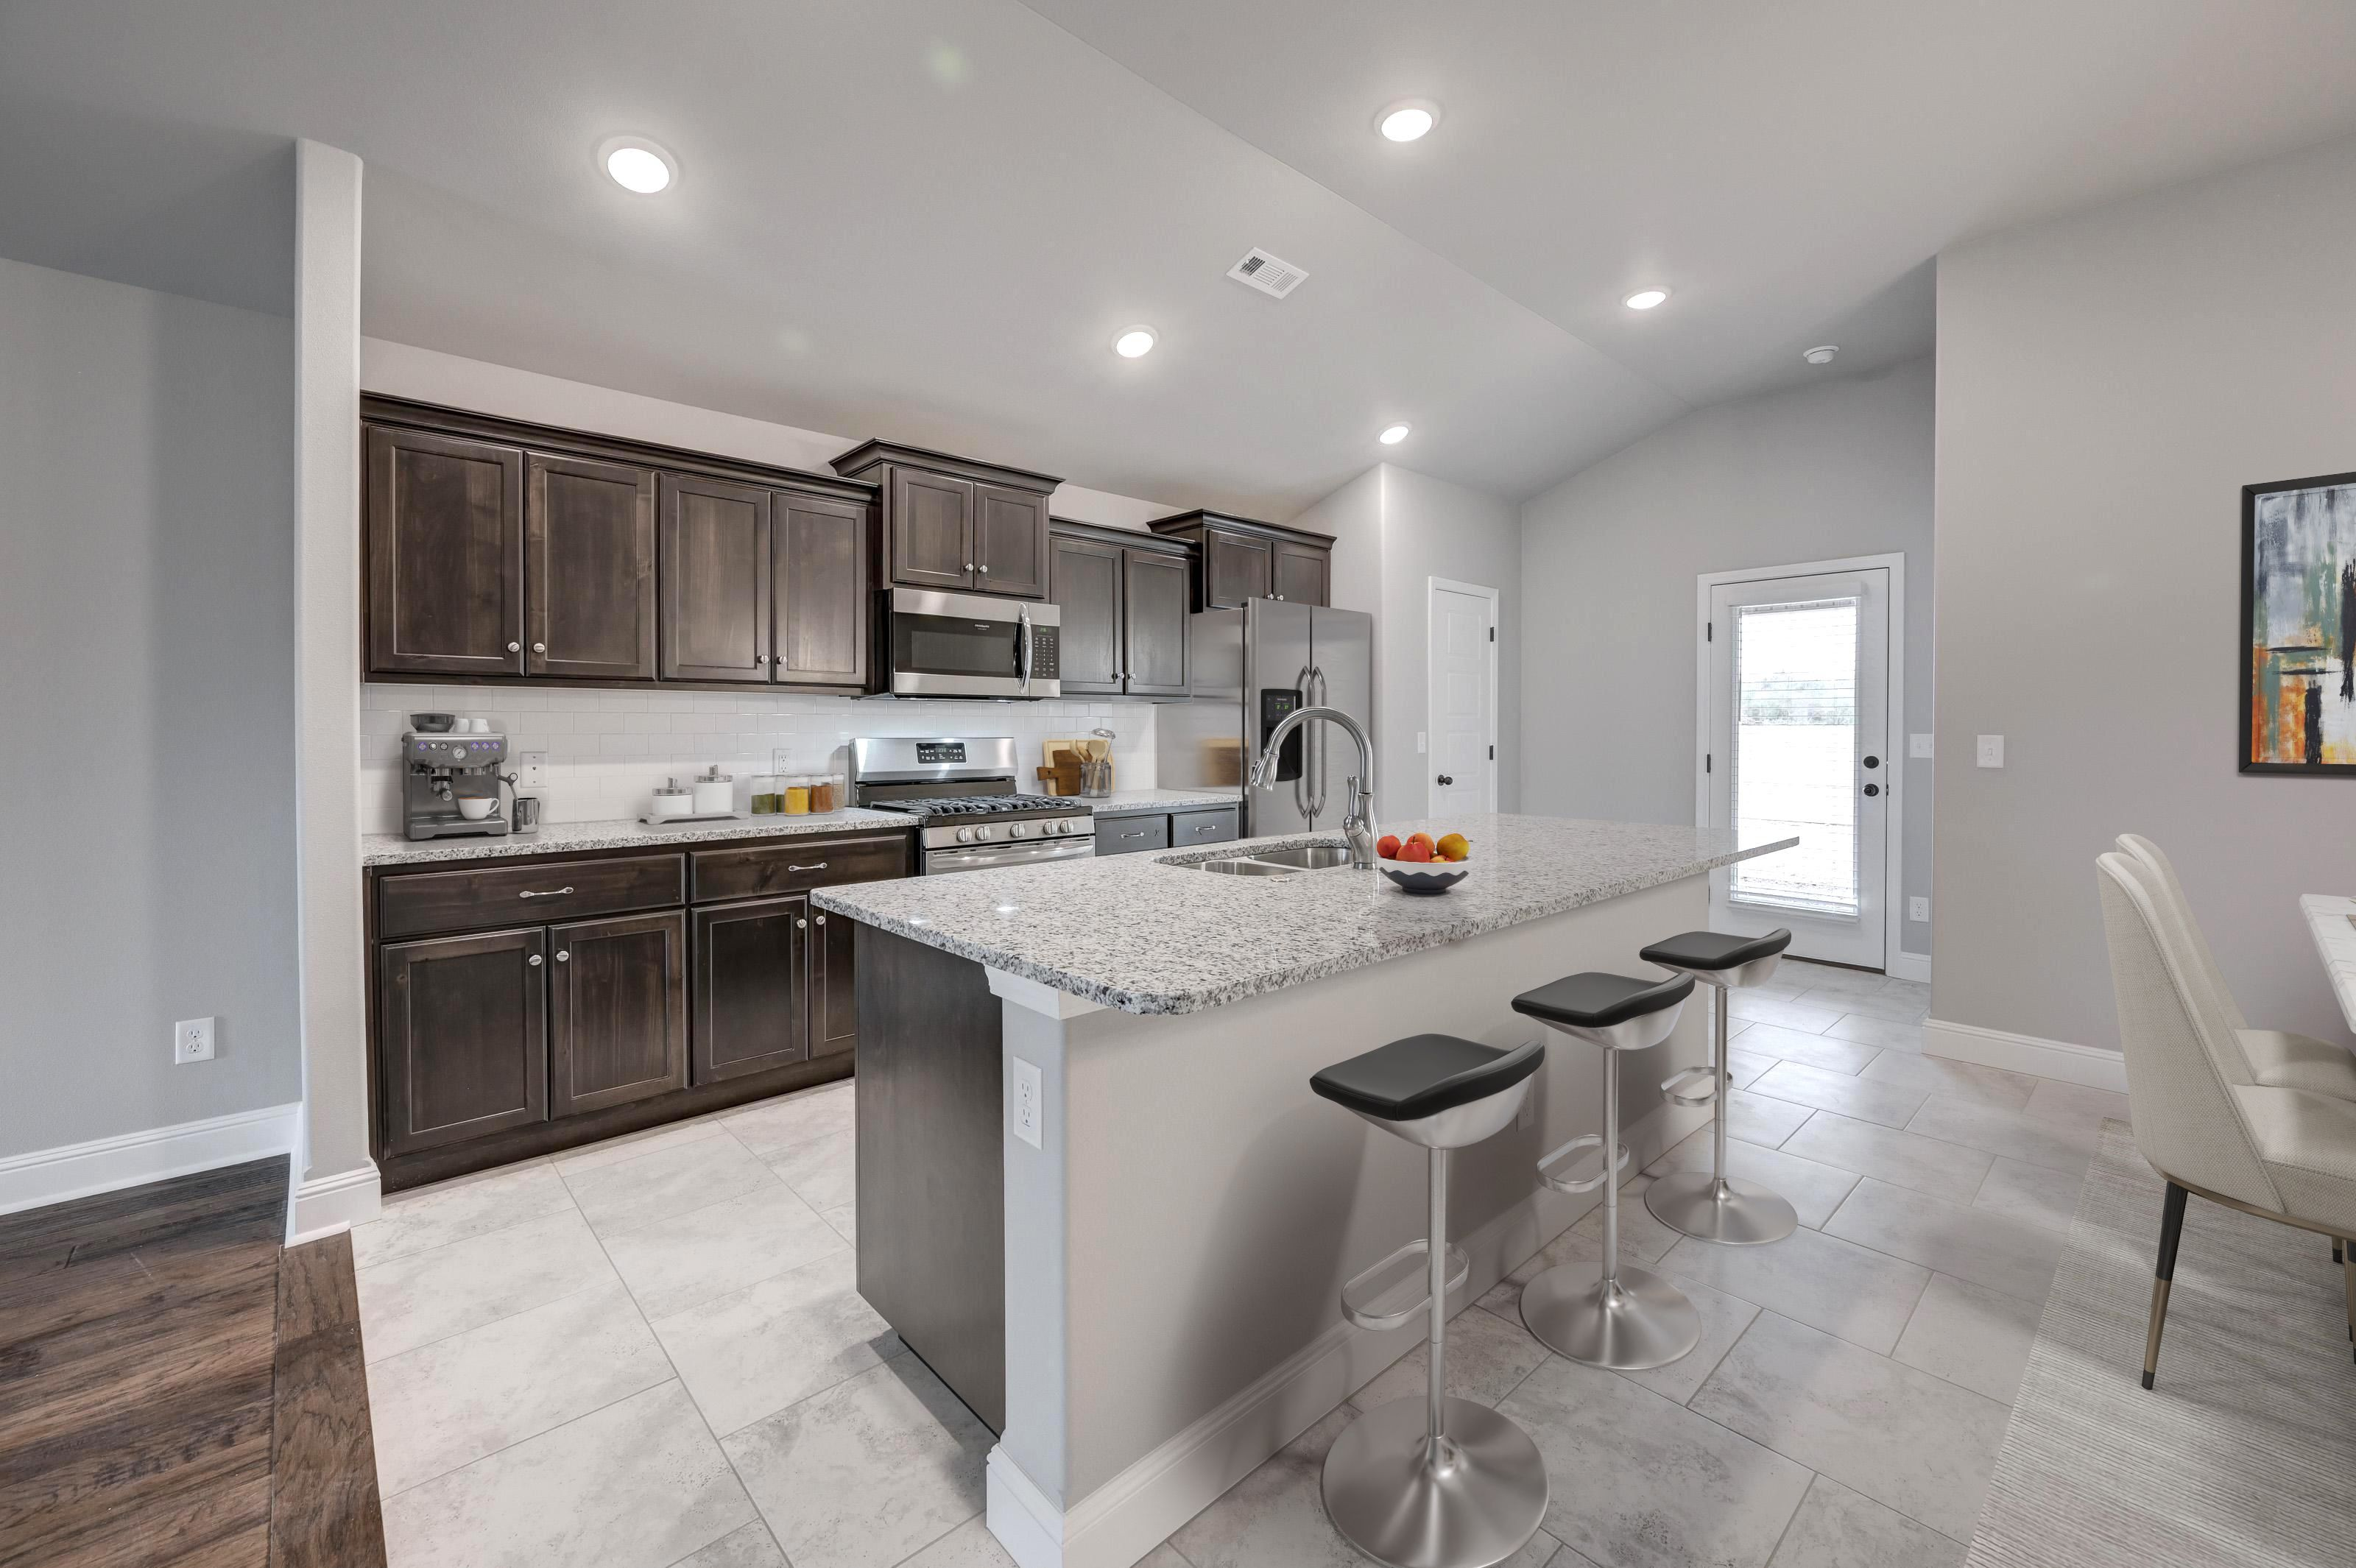 Kitchen featured in the 1550KB Series By Schuber Mitchell Homes in Joplin, MO